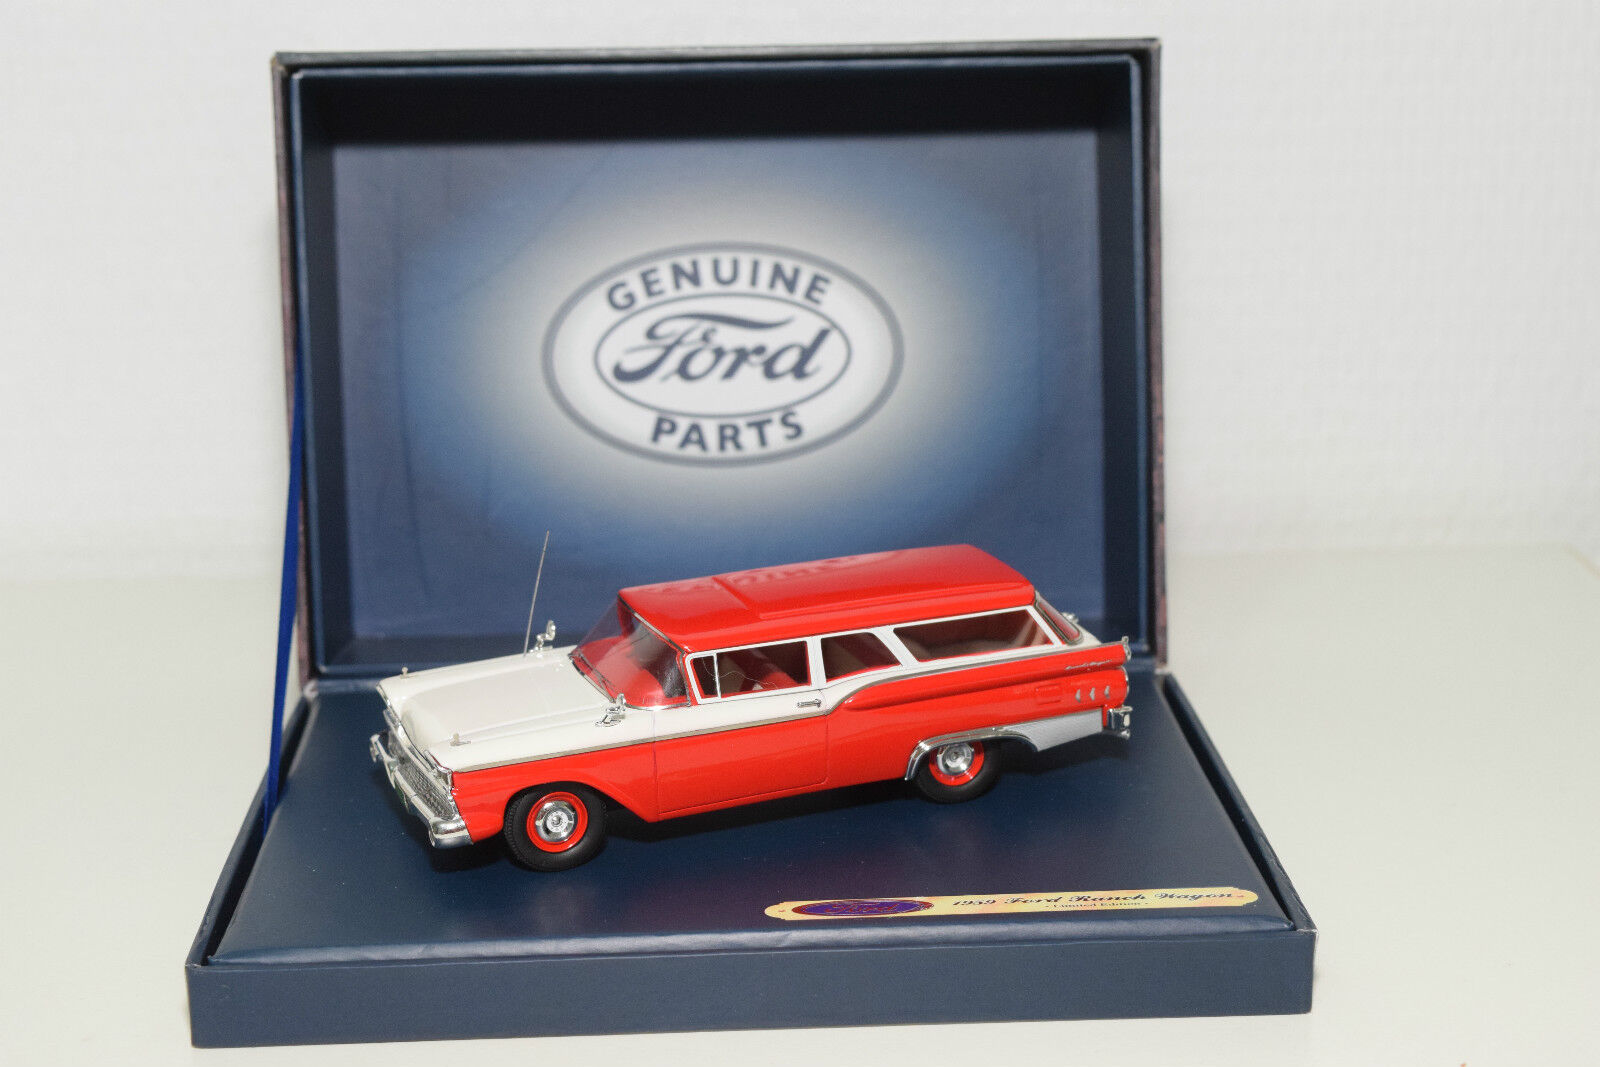 . MOTORHEADS4U 447 GENUINE PARTS FORD RANCH WAGON 1959 rosso bianca  MINTBOXED RARE